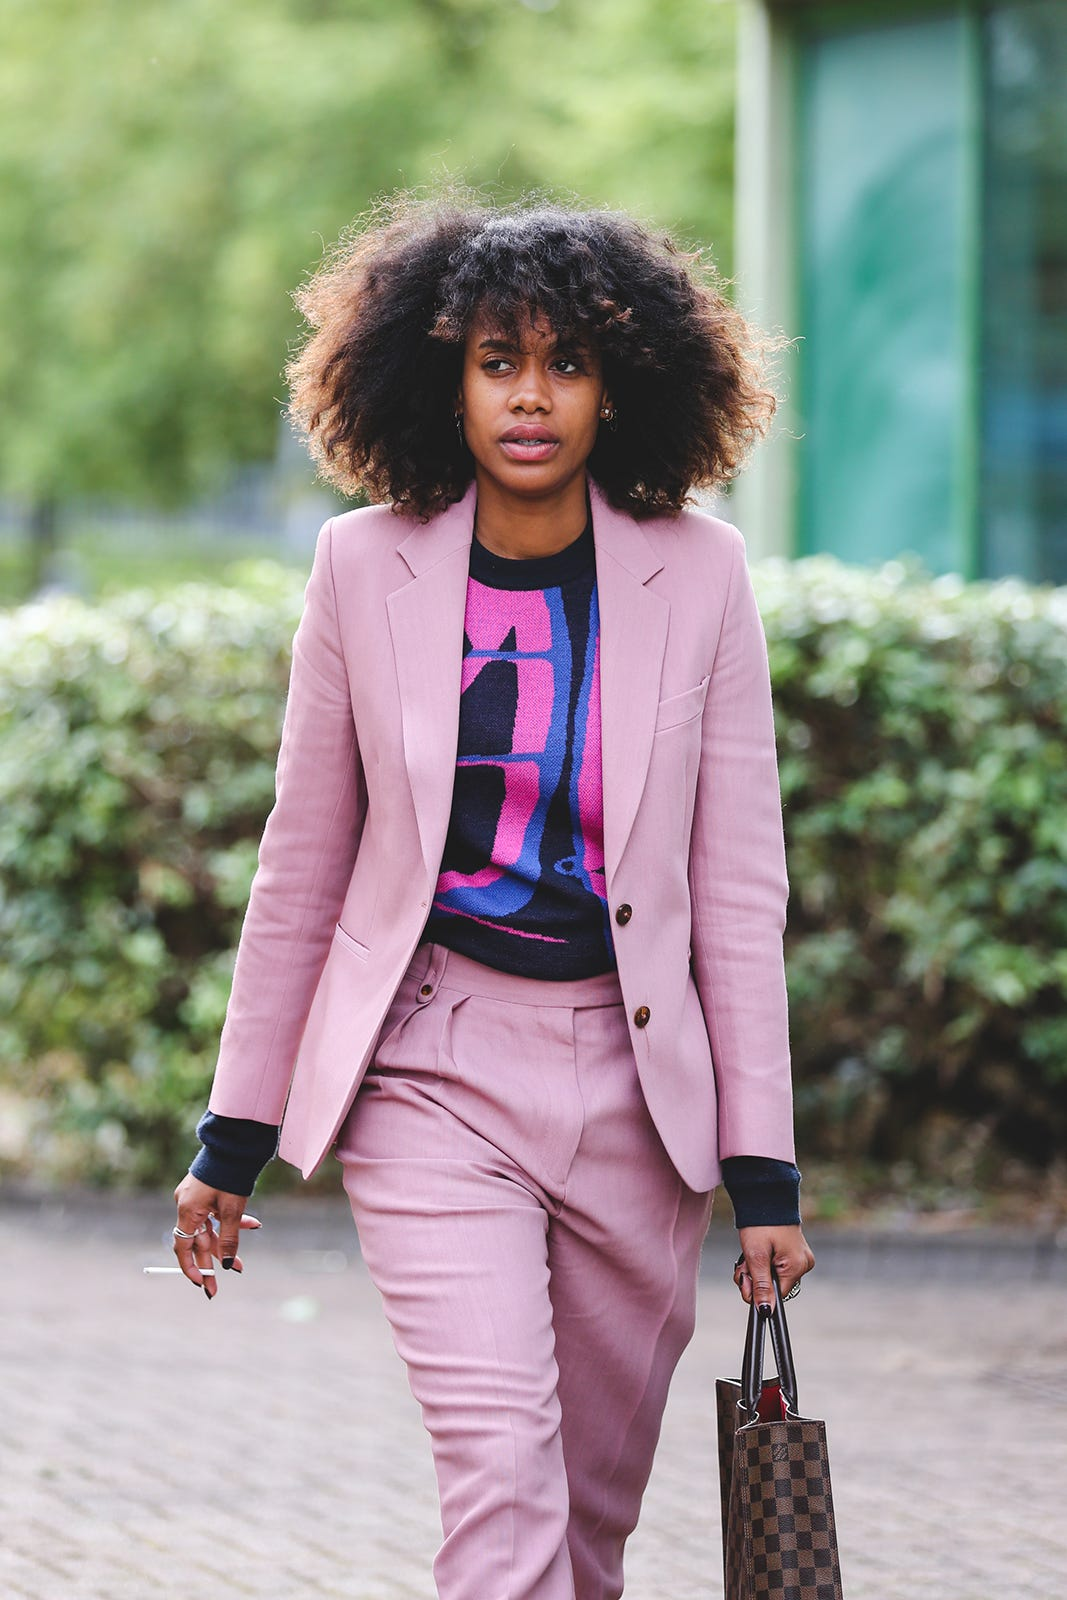 3e040b7c7c Fall Outfit Inspiration - LFW Street Style Photos 2016